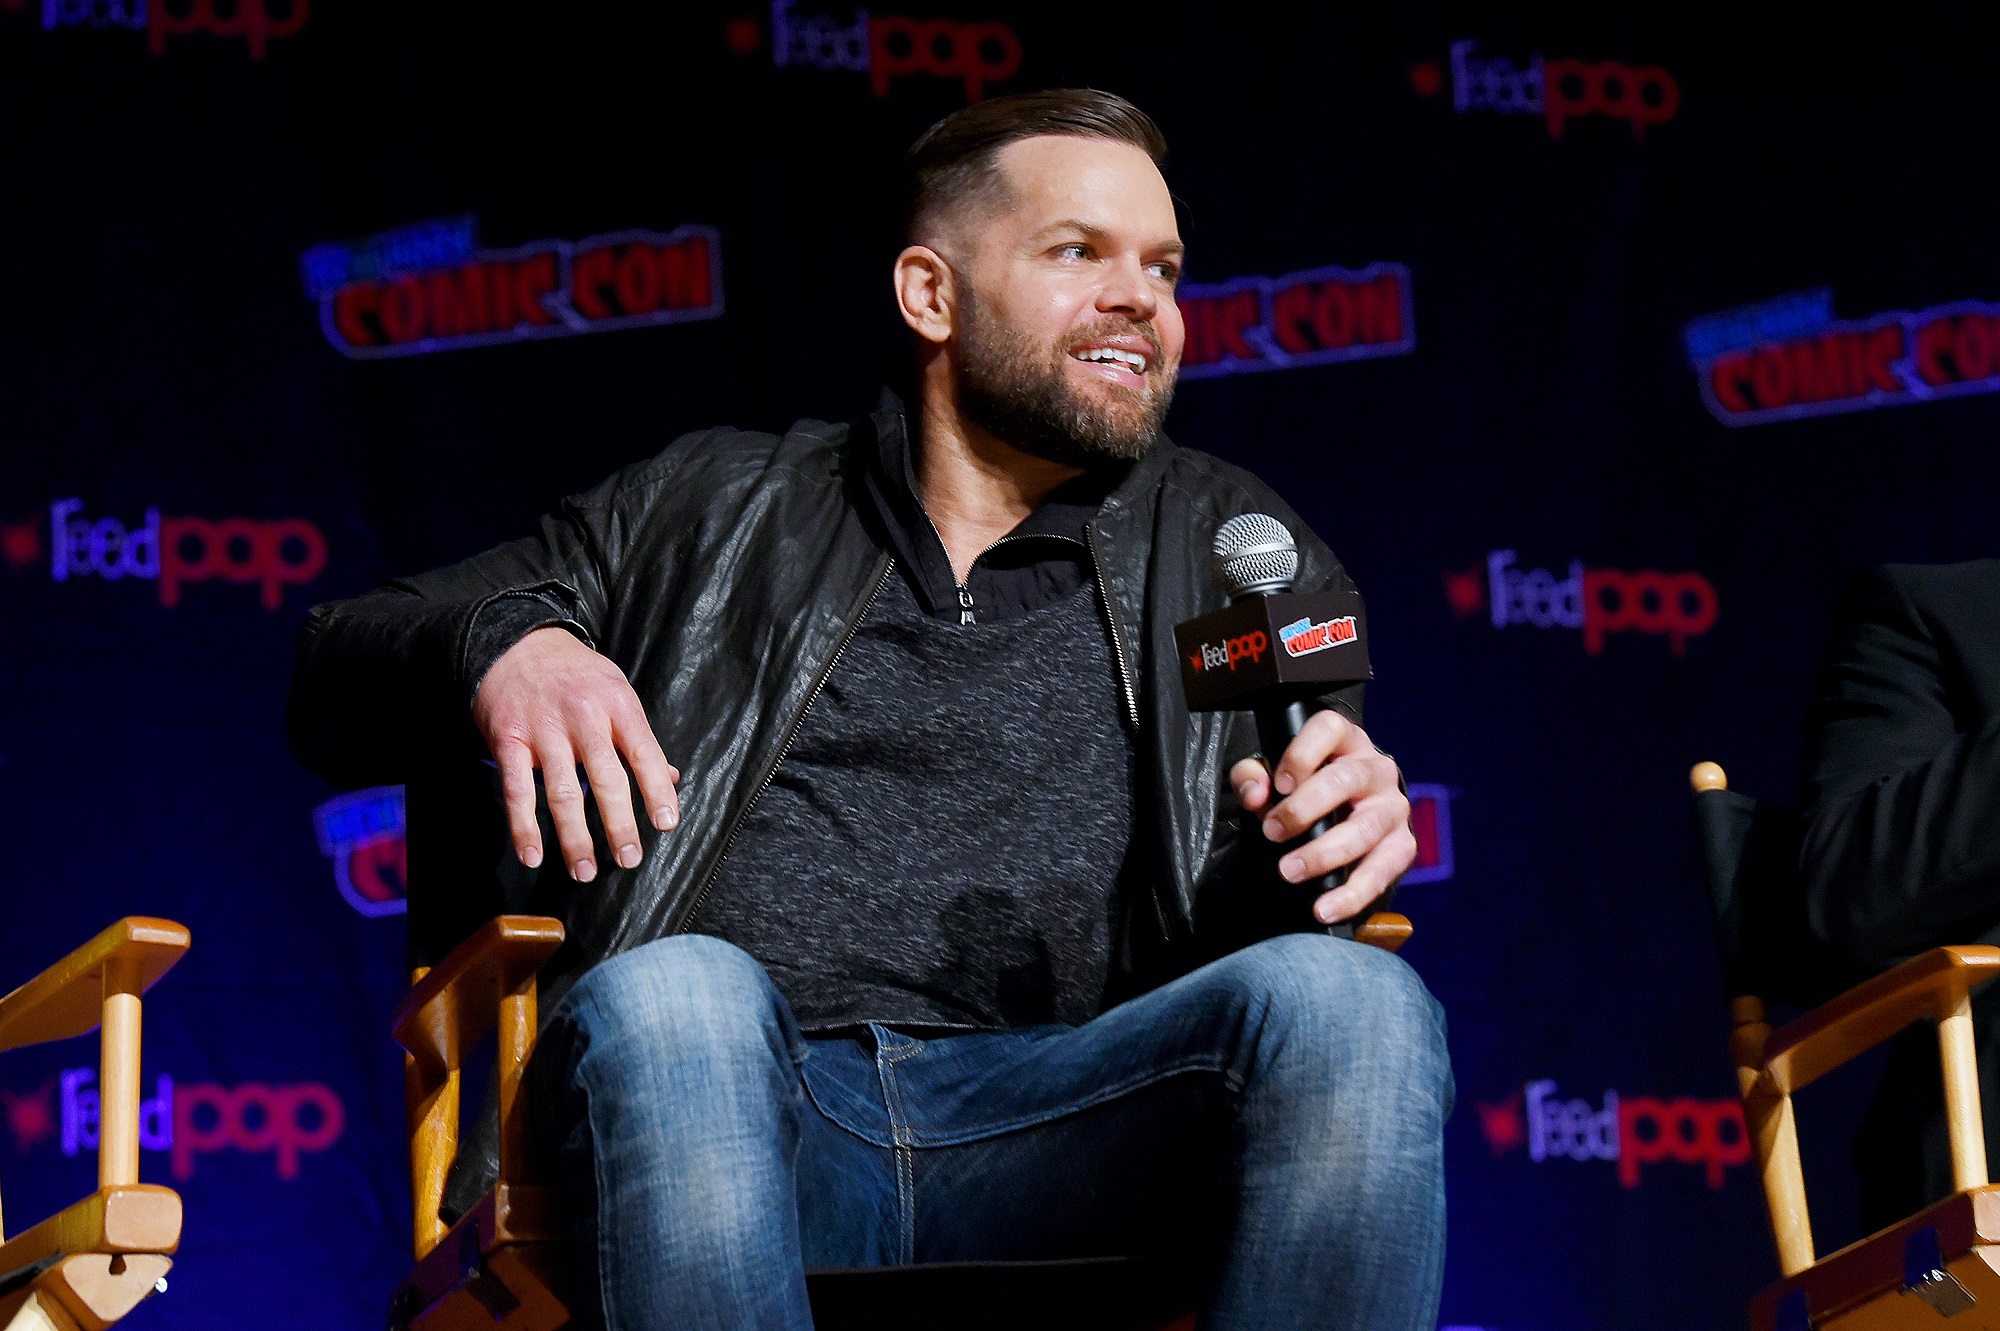 Wes Chatham plays Amos Burton in The Expanse